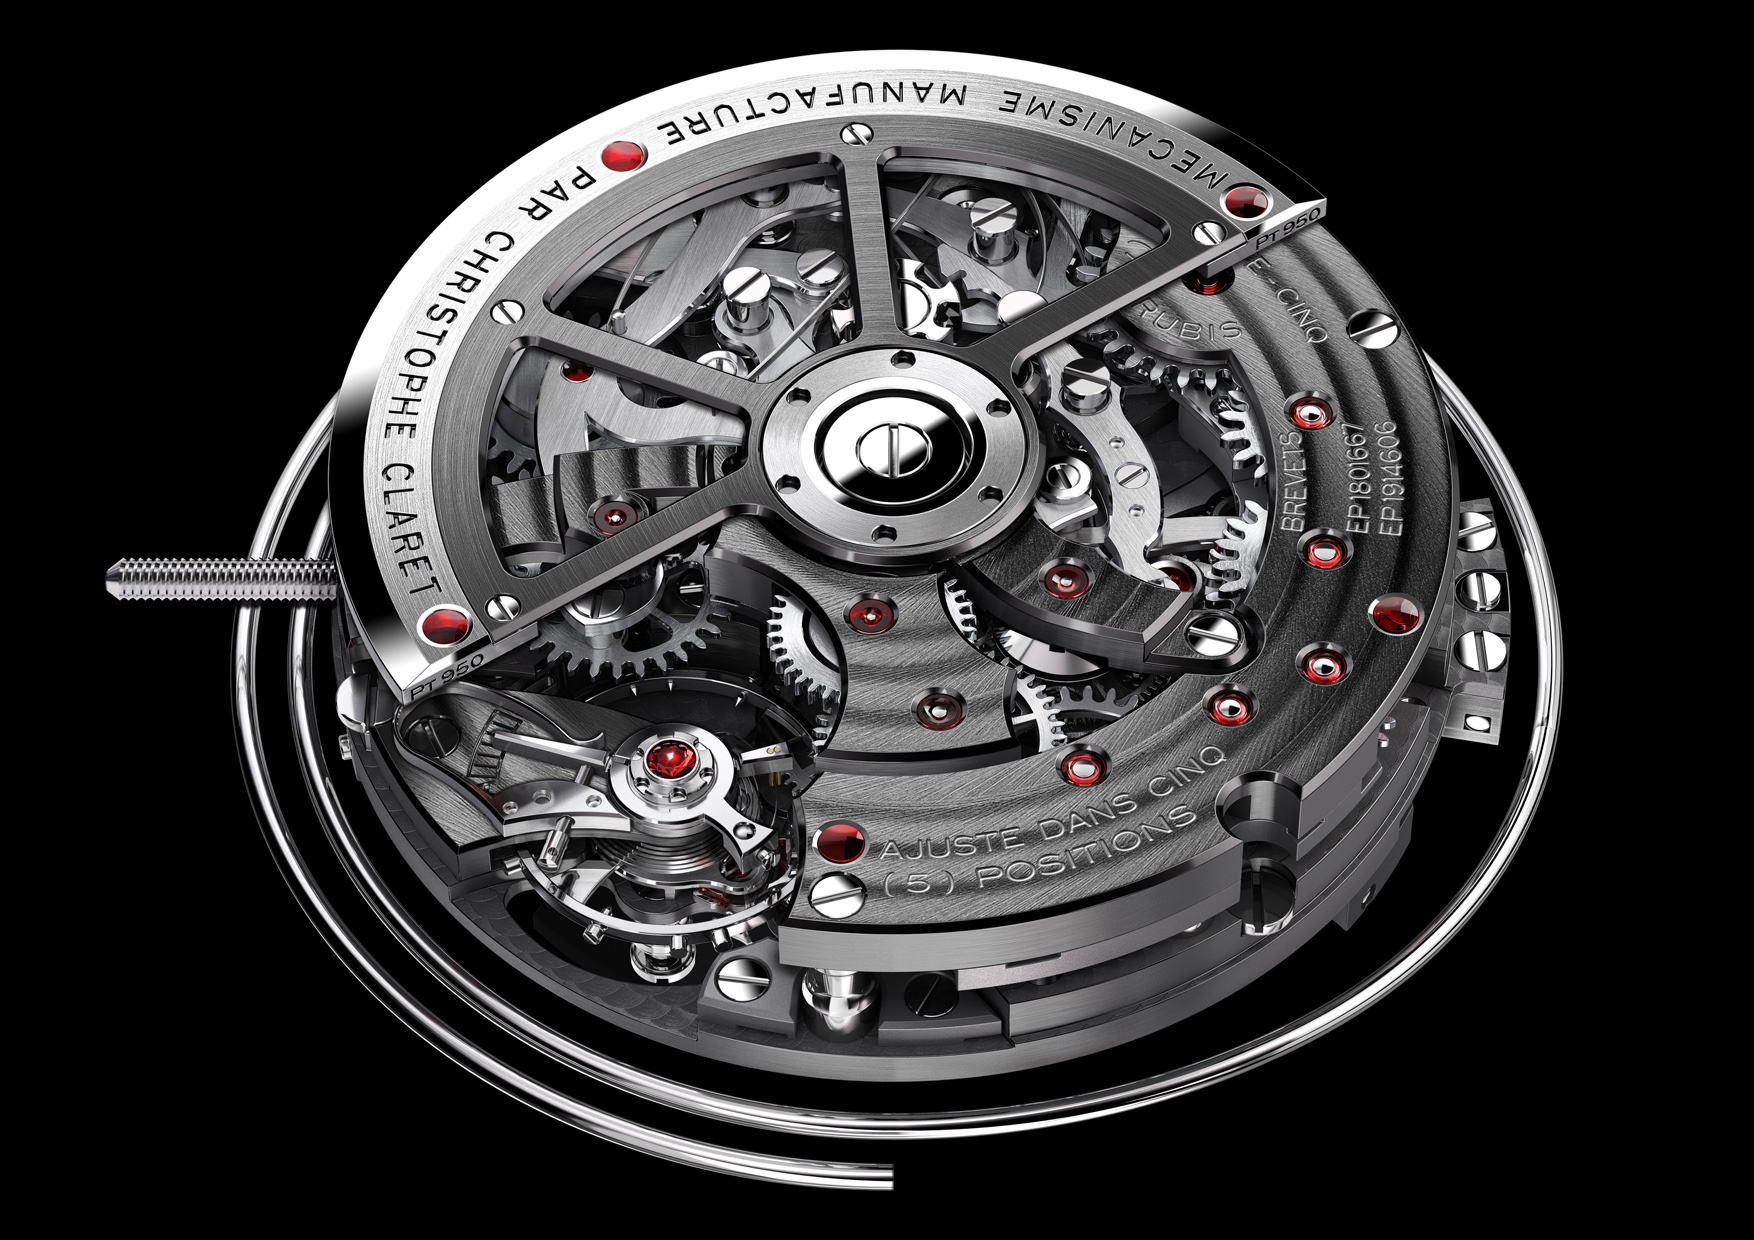 Christophe Claret Kantharos - Movement